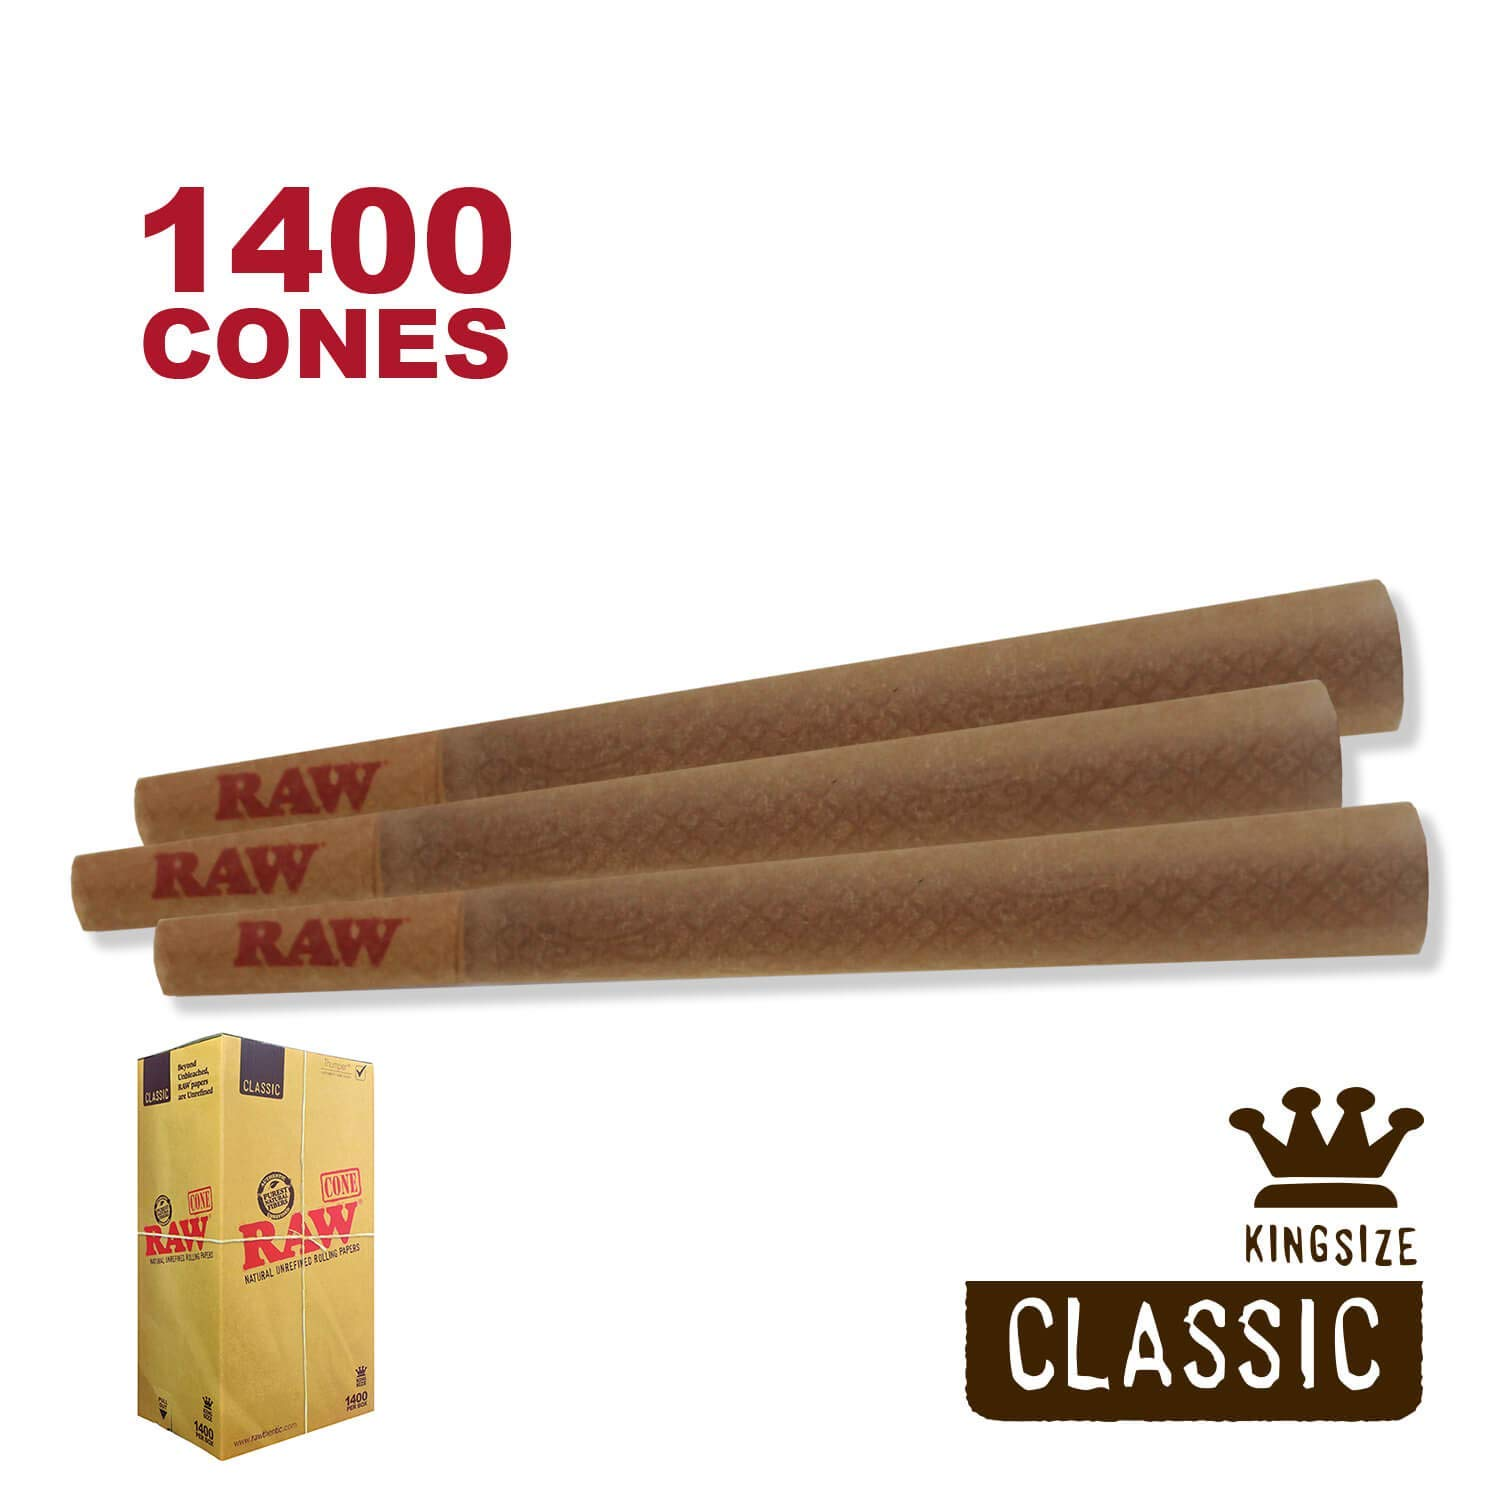 RAW 1400 Classic King Size Cones - W Gallery Scoop Sticker - RAW Box - Pure Hemp 109mm Pre Rolled Cones - 26mm Filter Tips - Natural Brown Unbleached Unrefined Rolling Papers - Bulk Pack Bundle